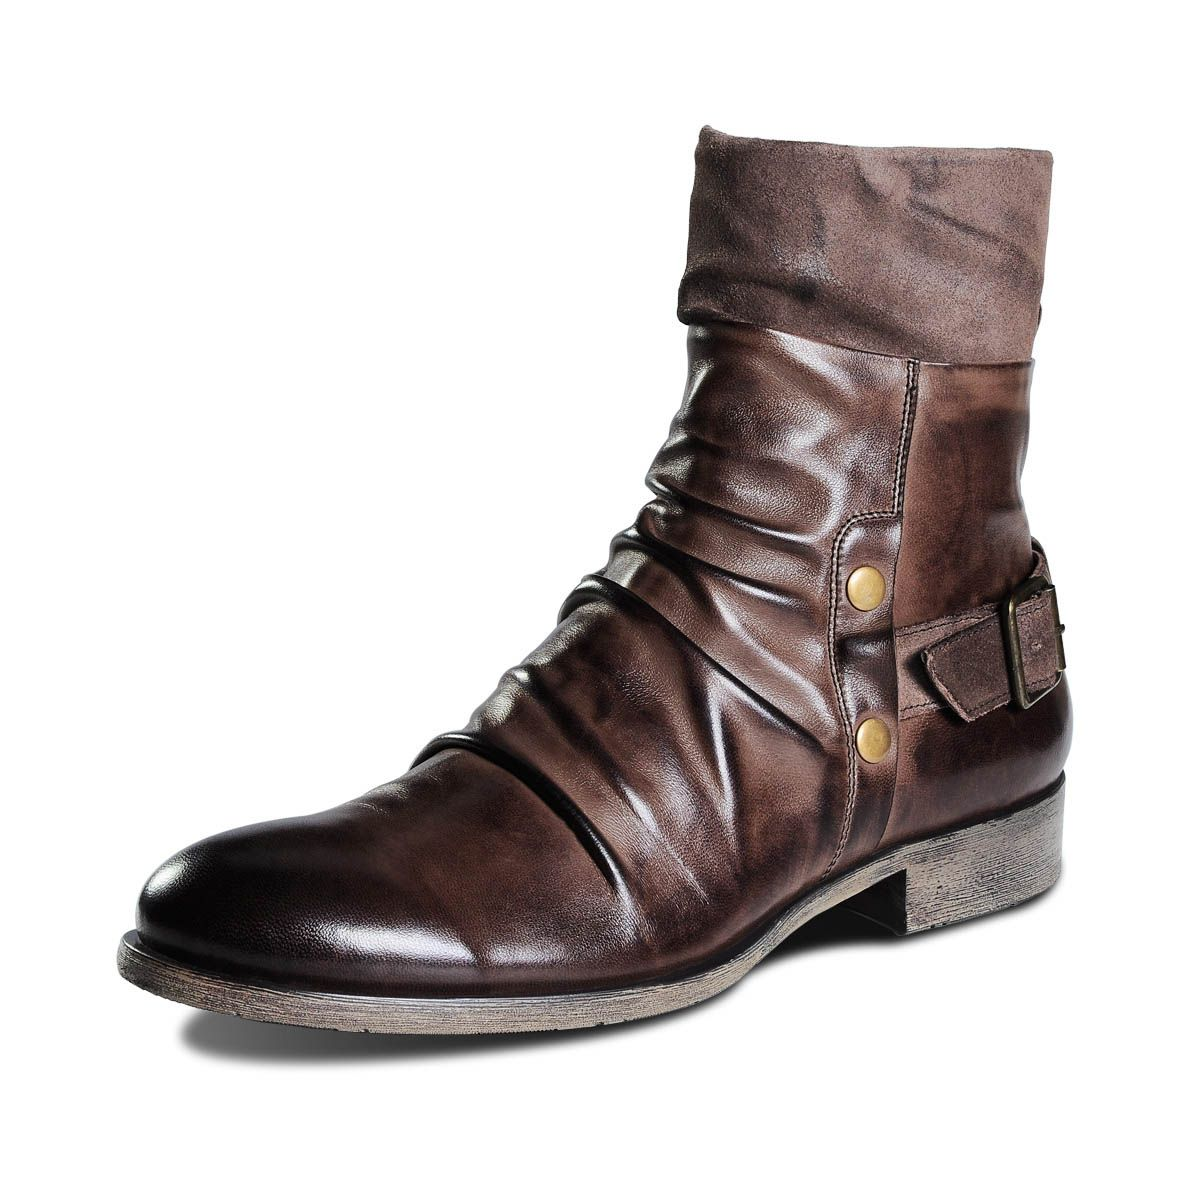 men's dress boots - Google Search | Clothing | Pinterest | Men ...